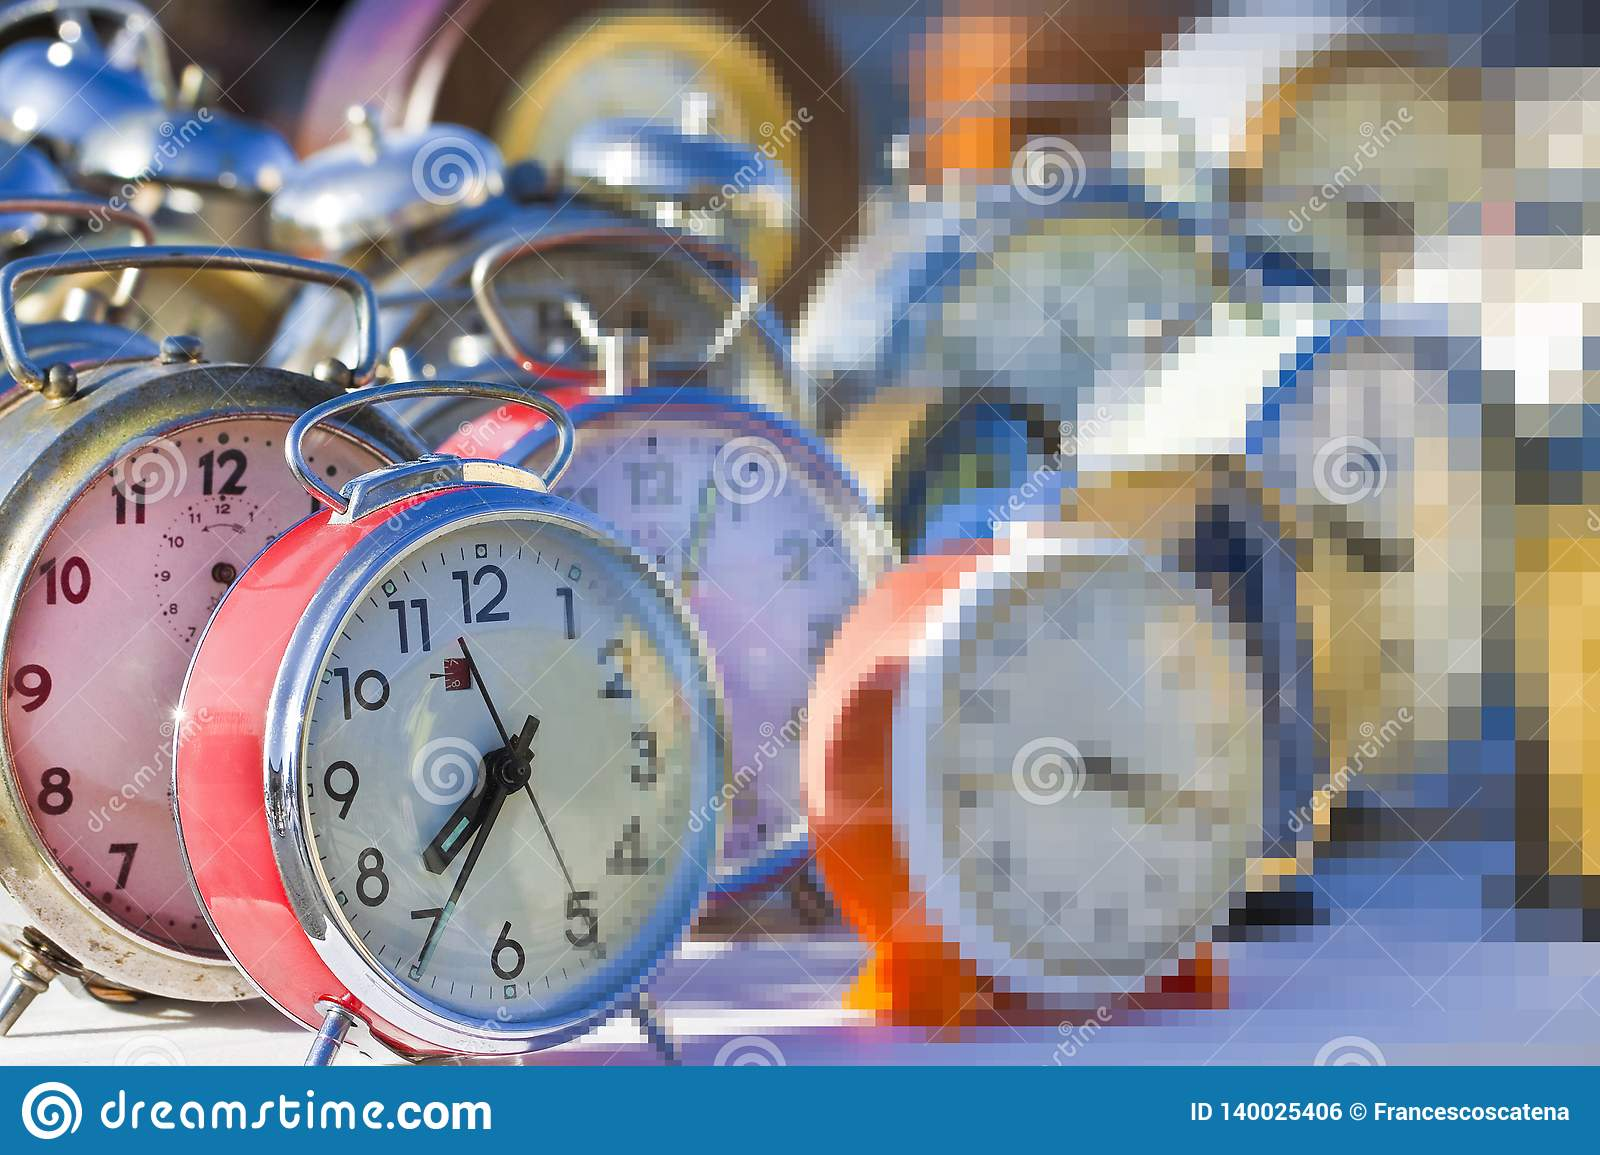 Flow of time is just an illusion - concept image with old colored metal table clocks